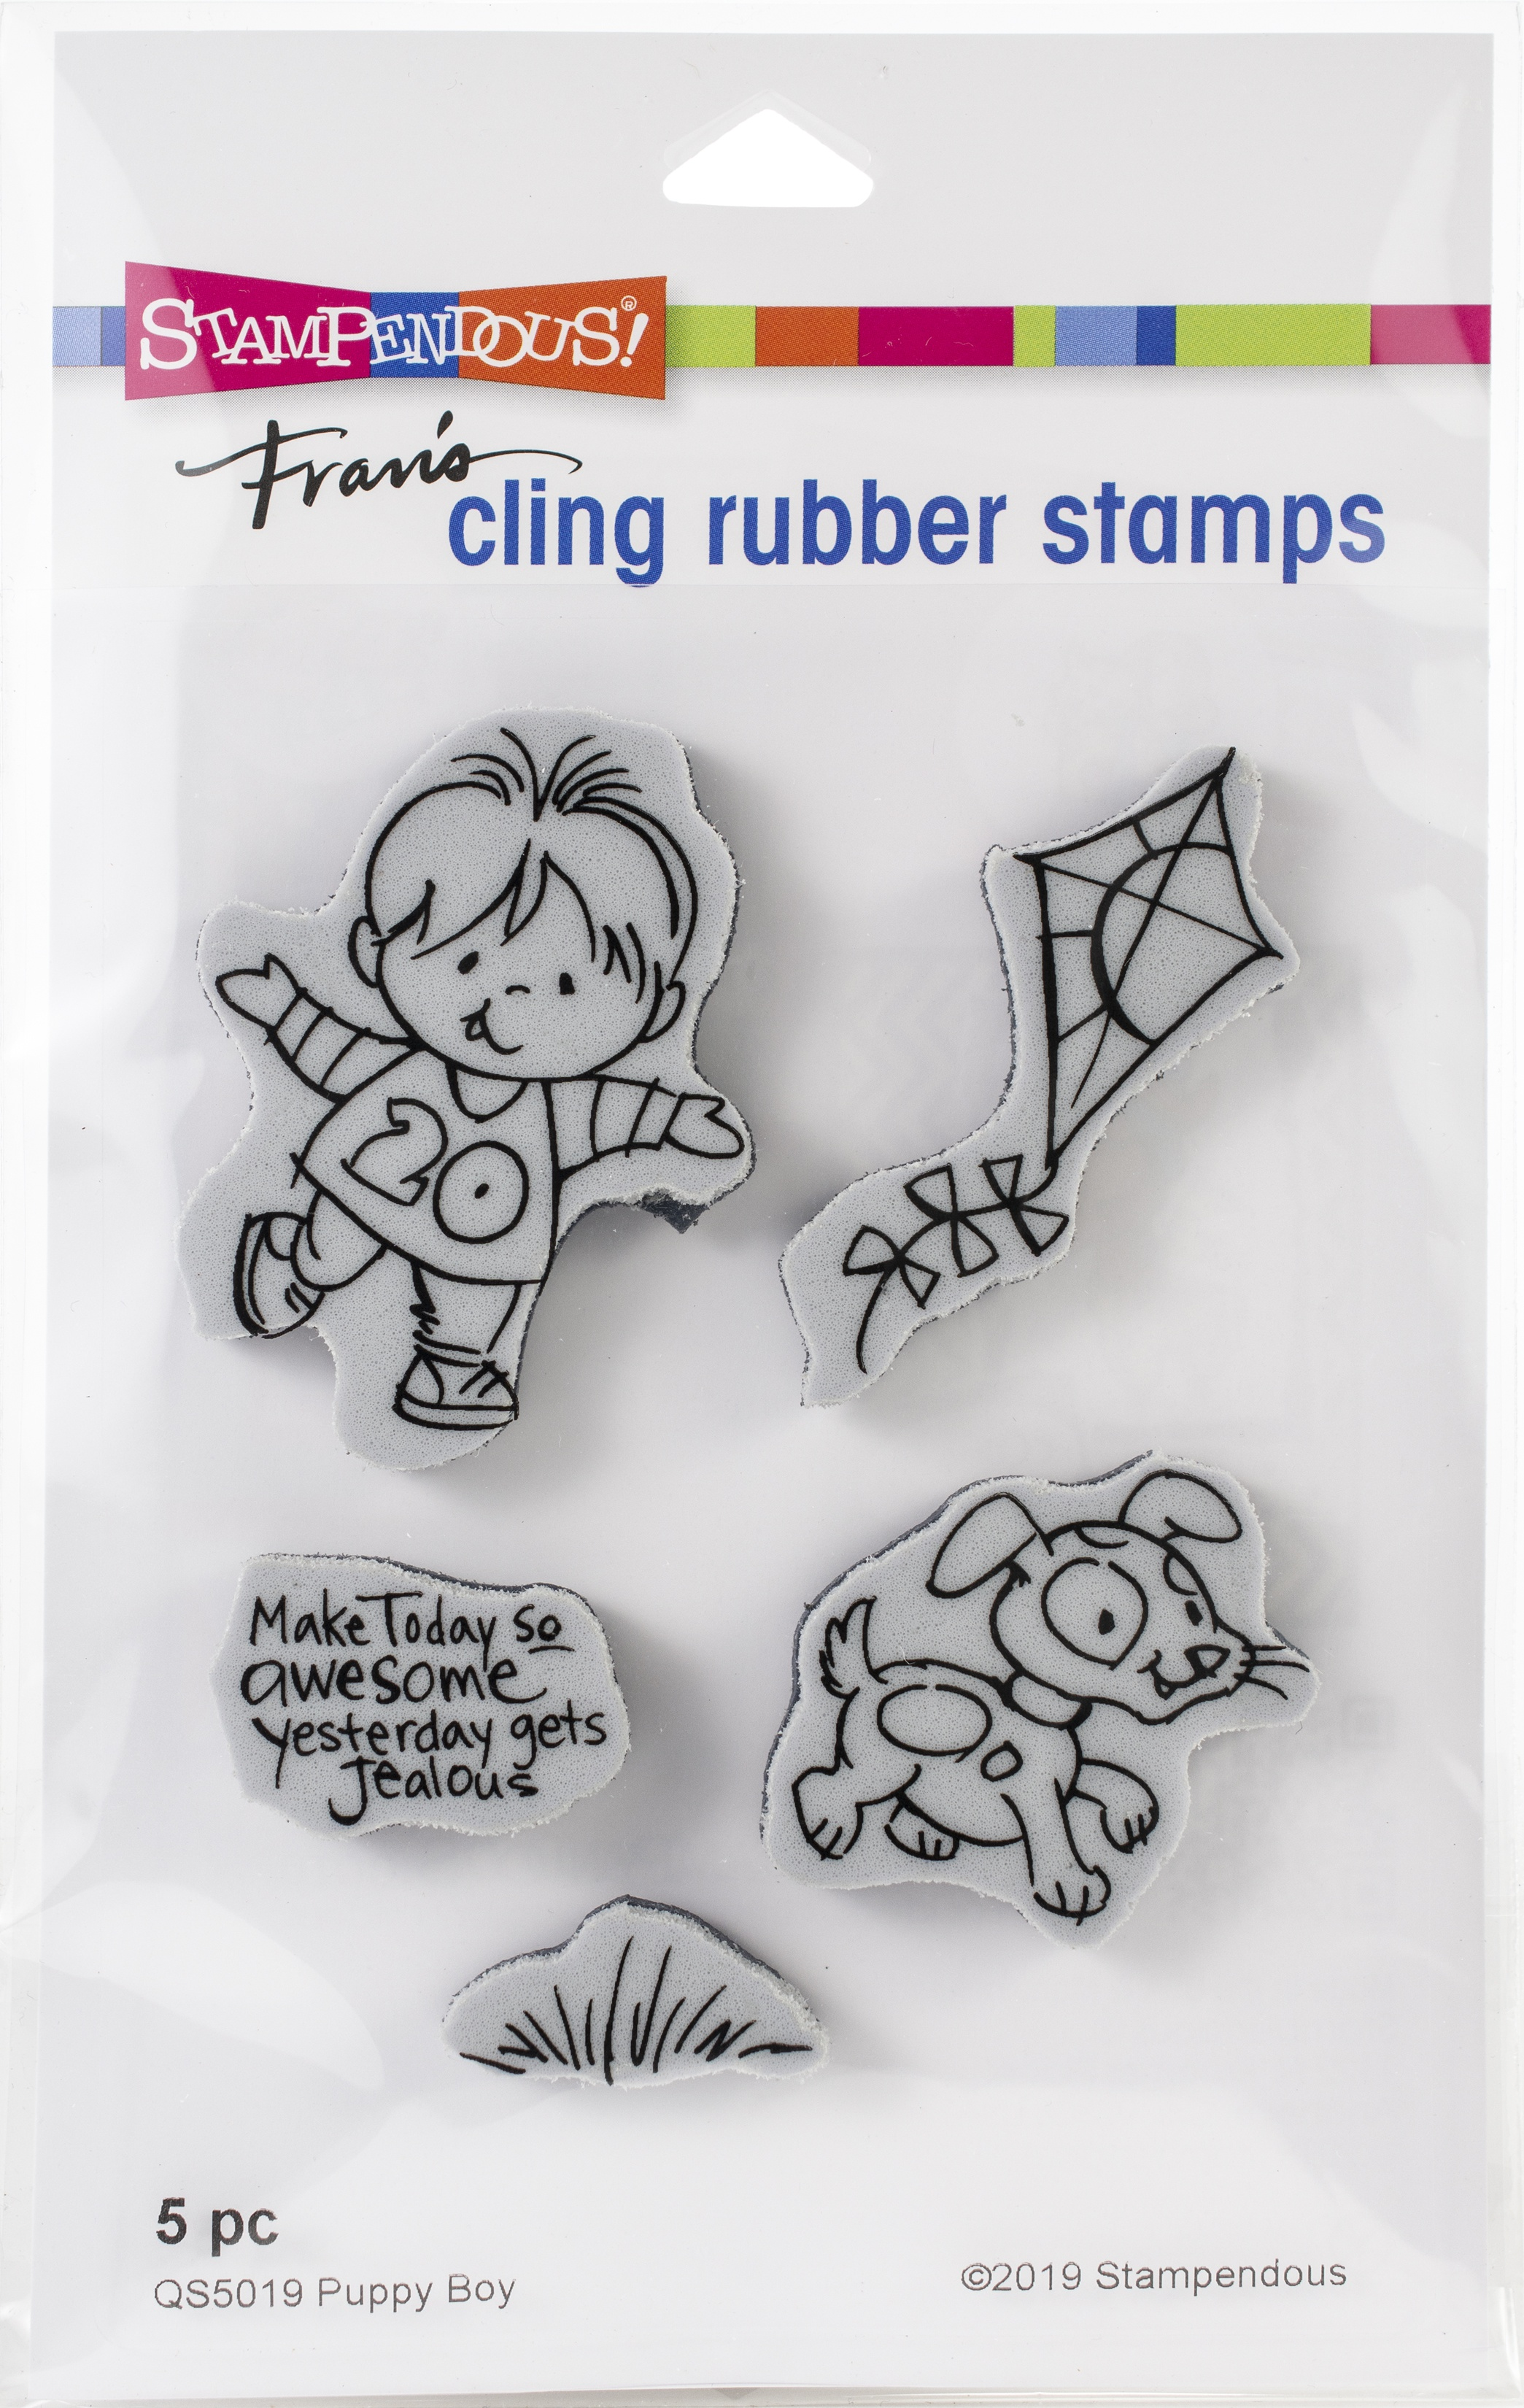 Stampendous Fran's Cling Rubber Stamps- Puppy Boy